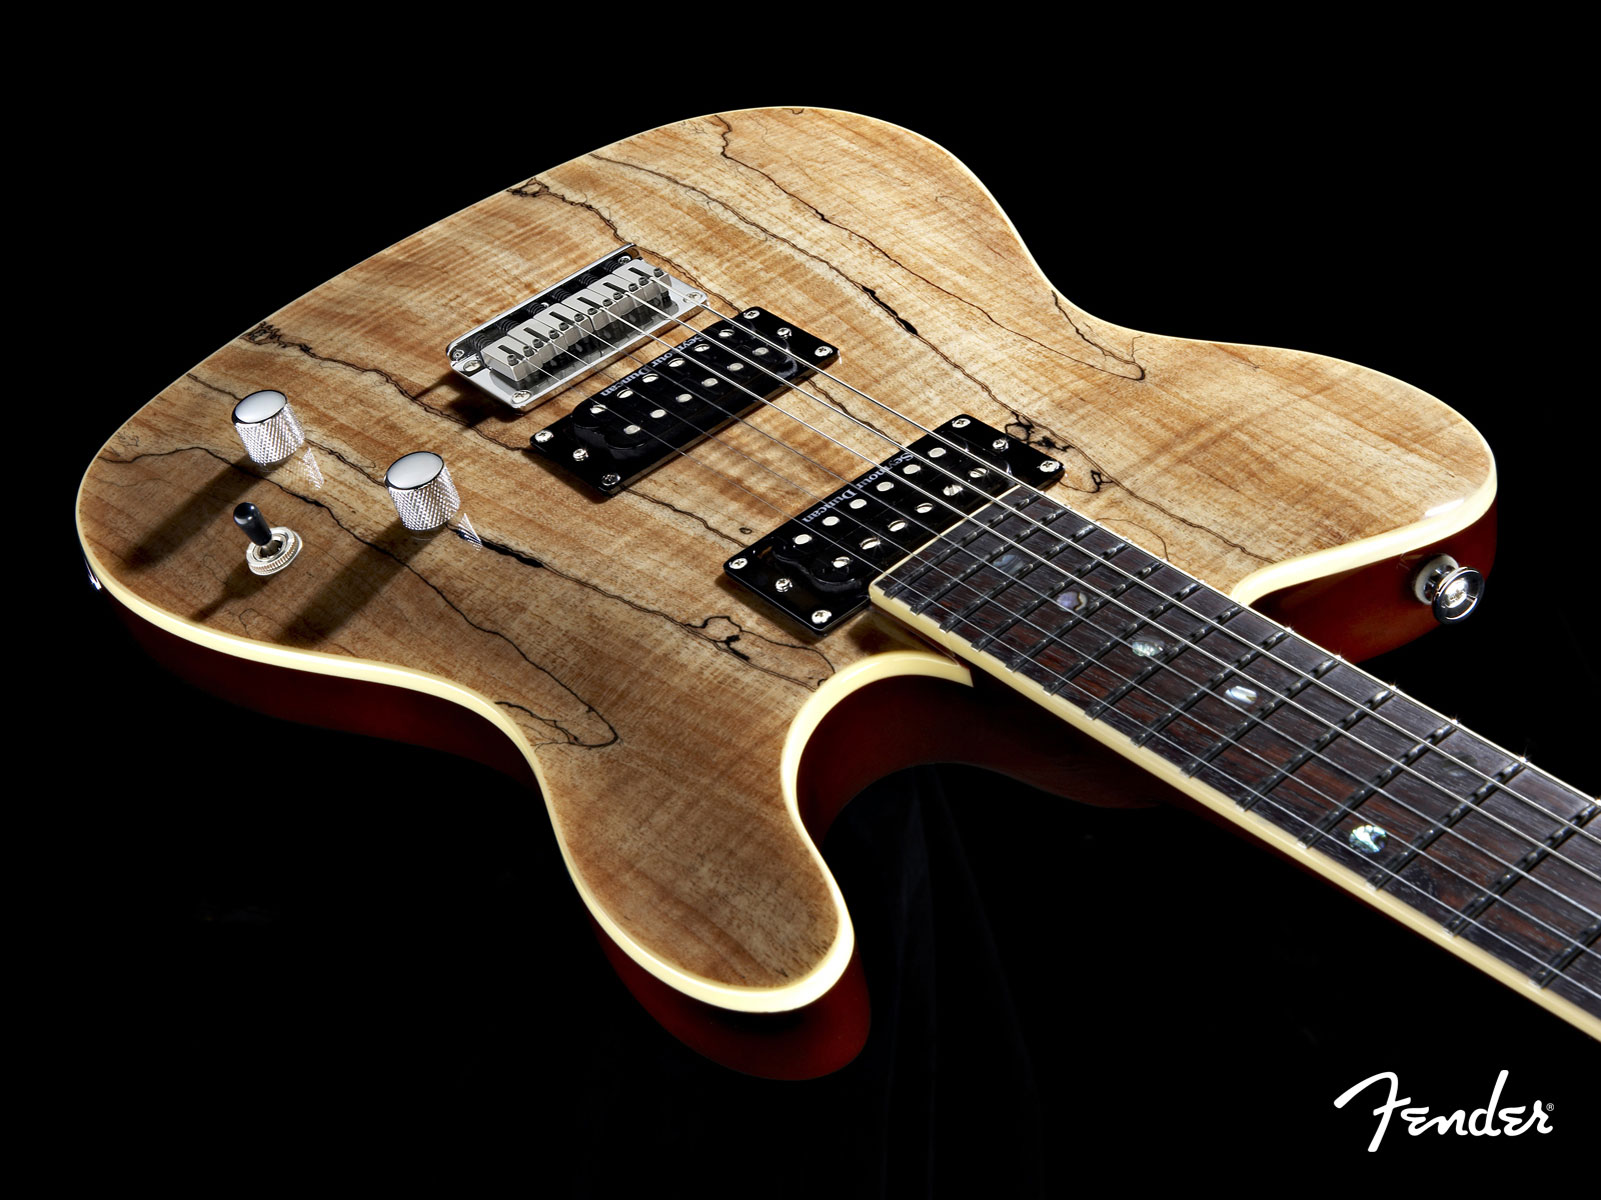 Fender Guitar Wallpapers For Desktop Images amp Pictures   Becuo 1601x1200